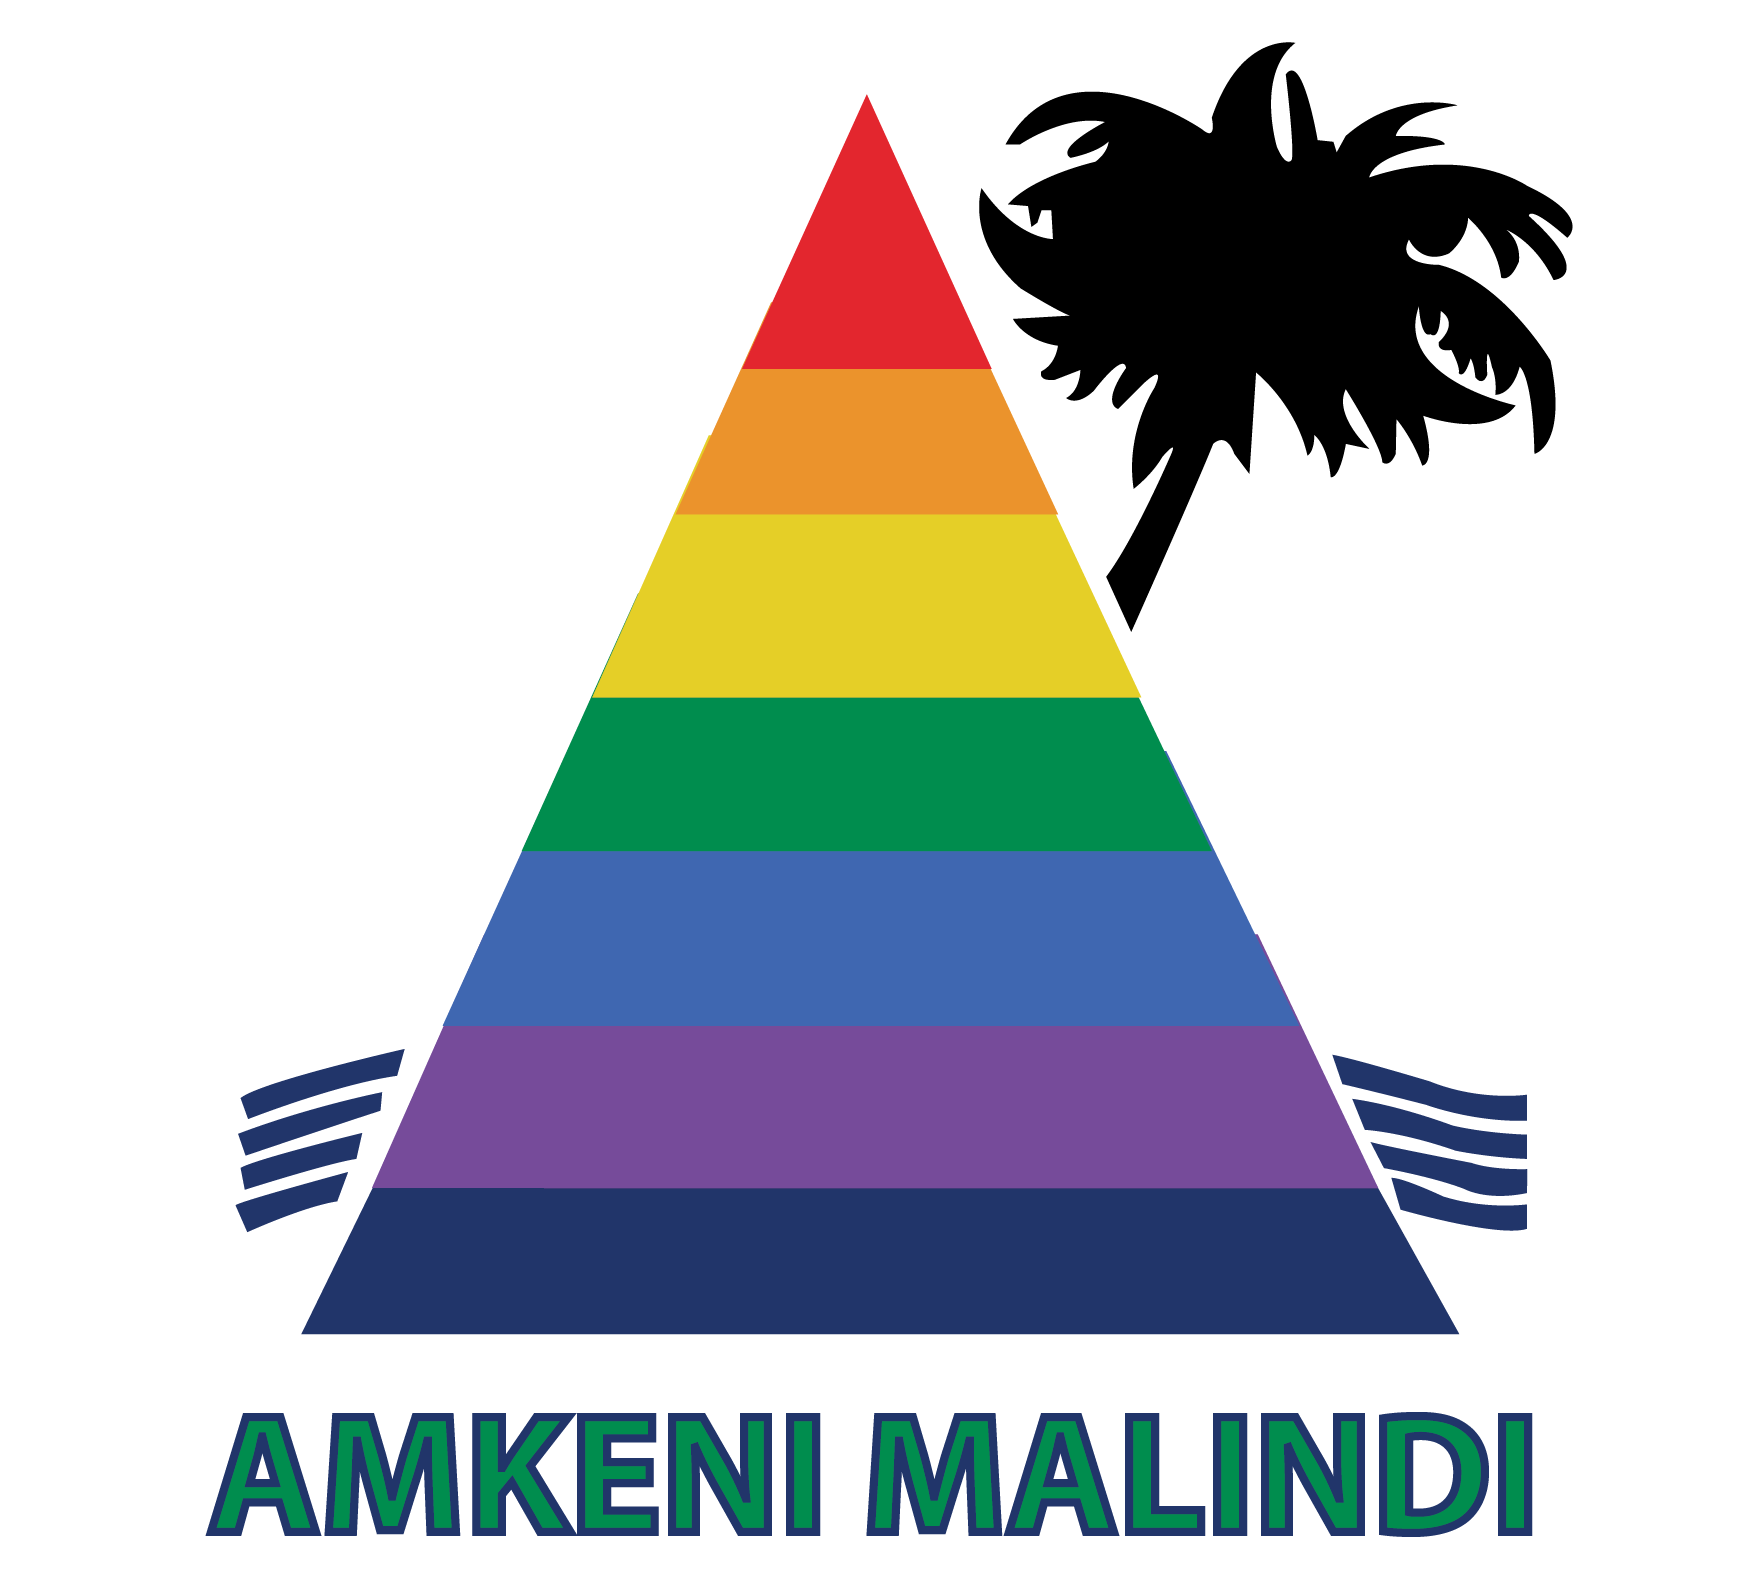 Amkeni Malindi Vacancy Ammouncement